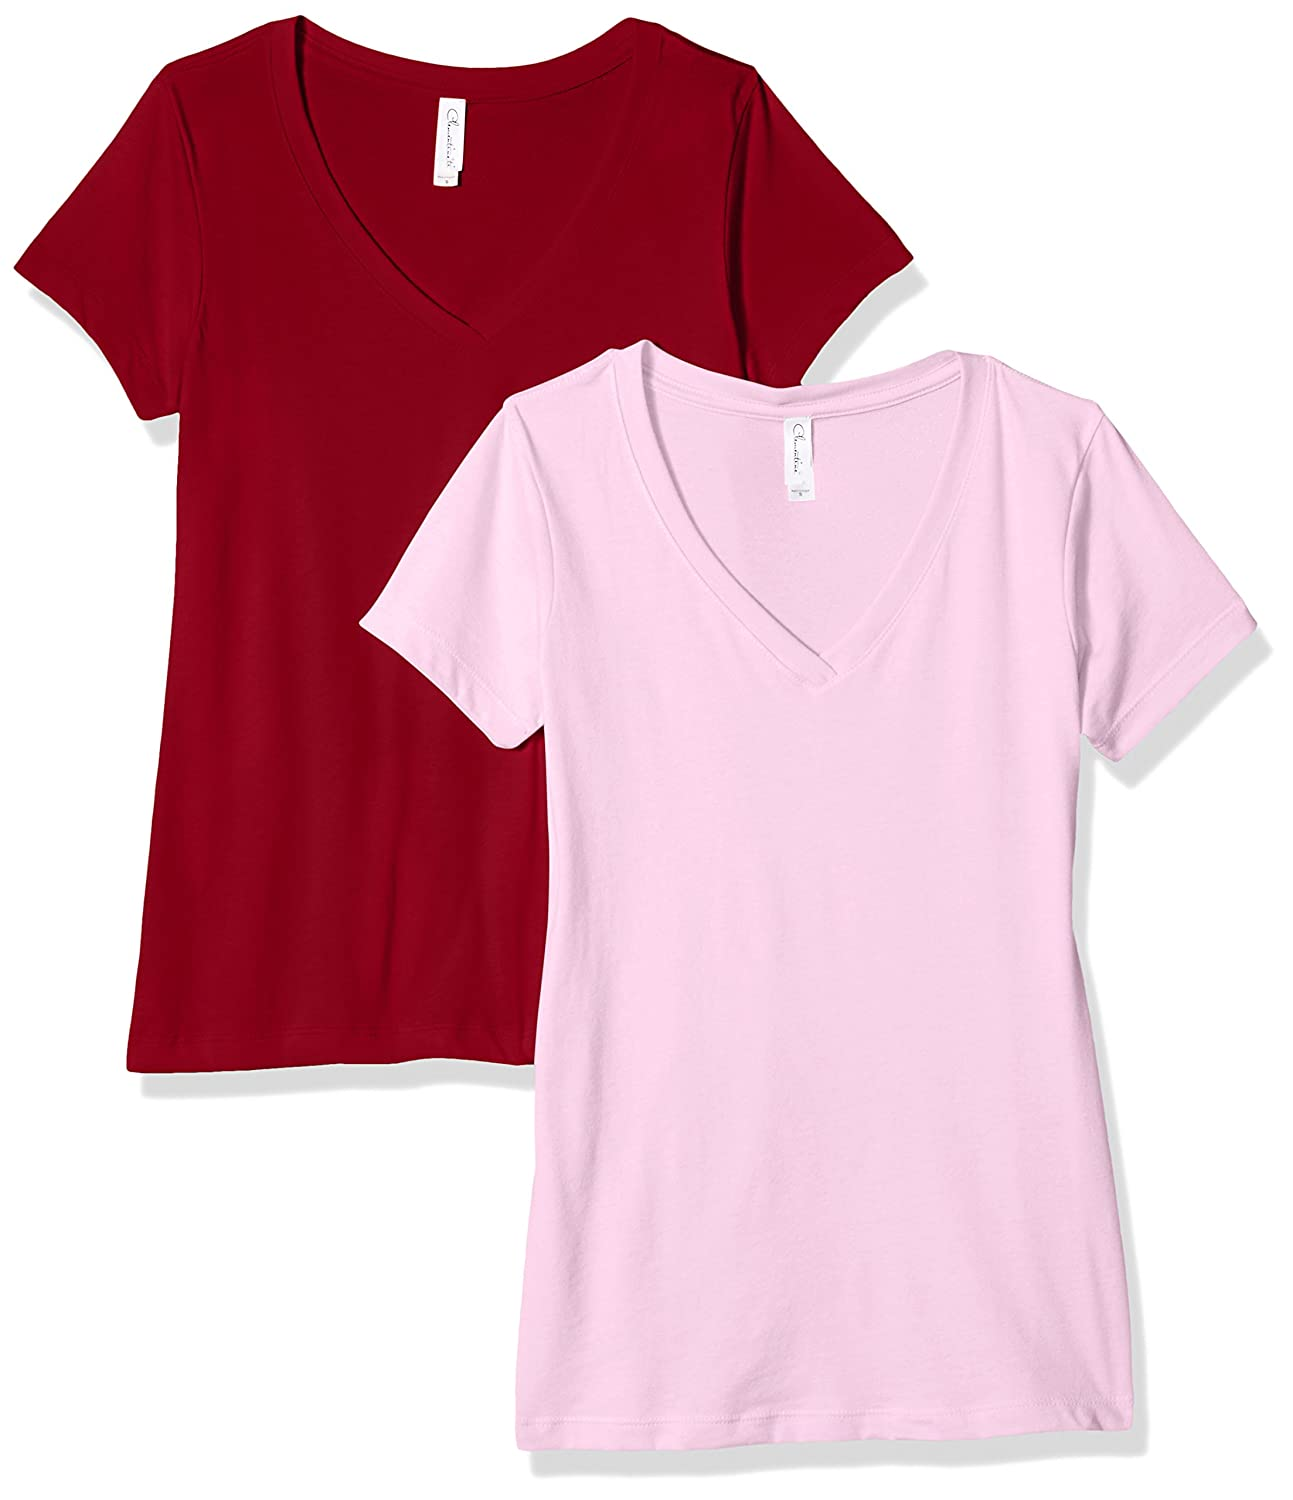 Clementine Apparel 2 Pack Short Sleeve T Shirts Tag Free V Neck Soft Comfort Cotton Blend Plain Undershirt Tees (1540) Clementine Womens Child Code 2-CLM1540